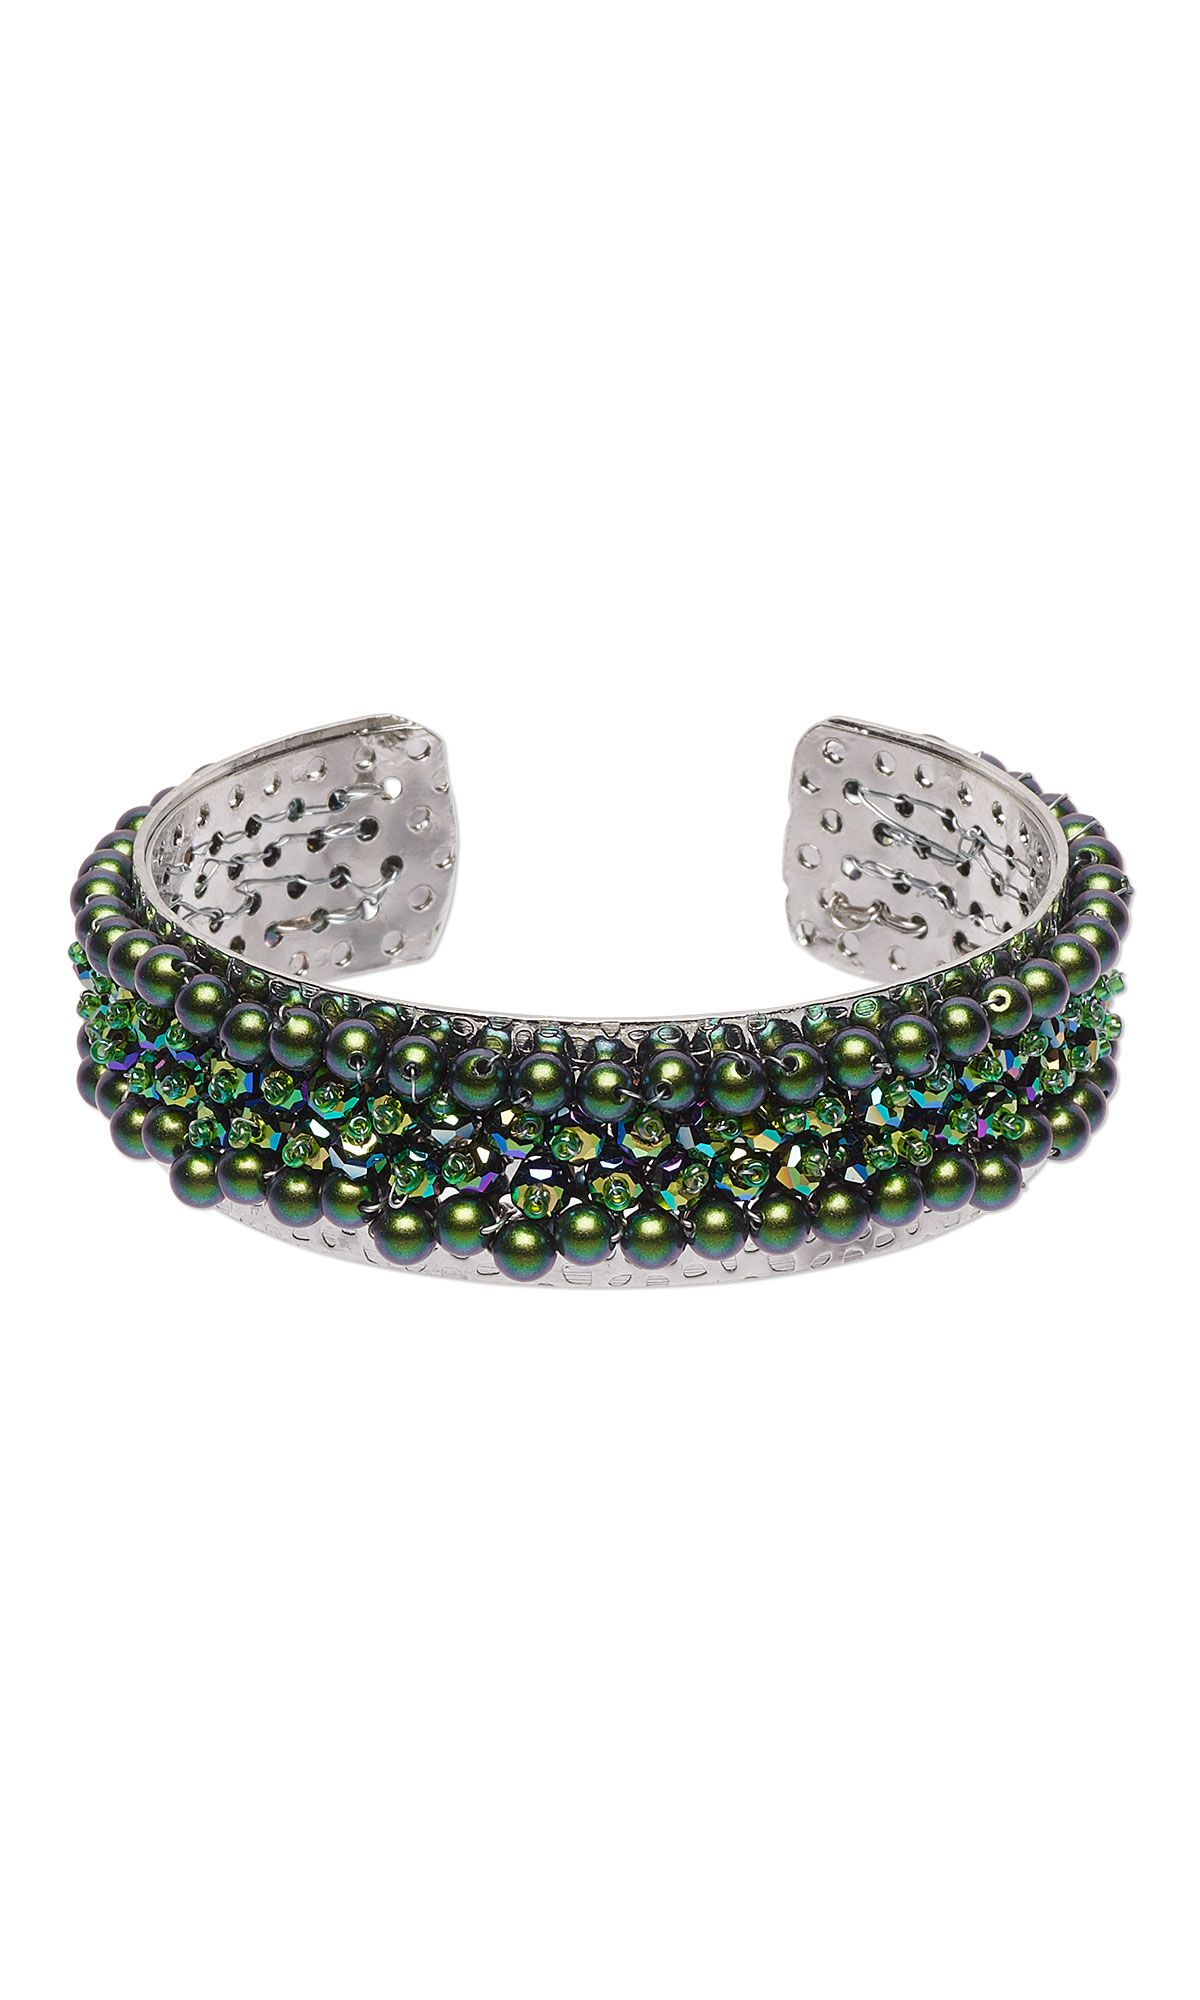 Perforated Cuff Bracelet Frame to wire wrap, bead and embellish to ...